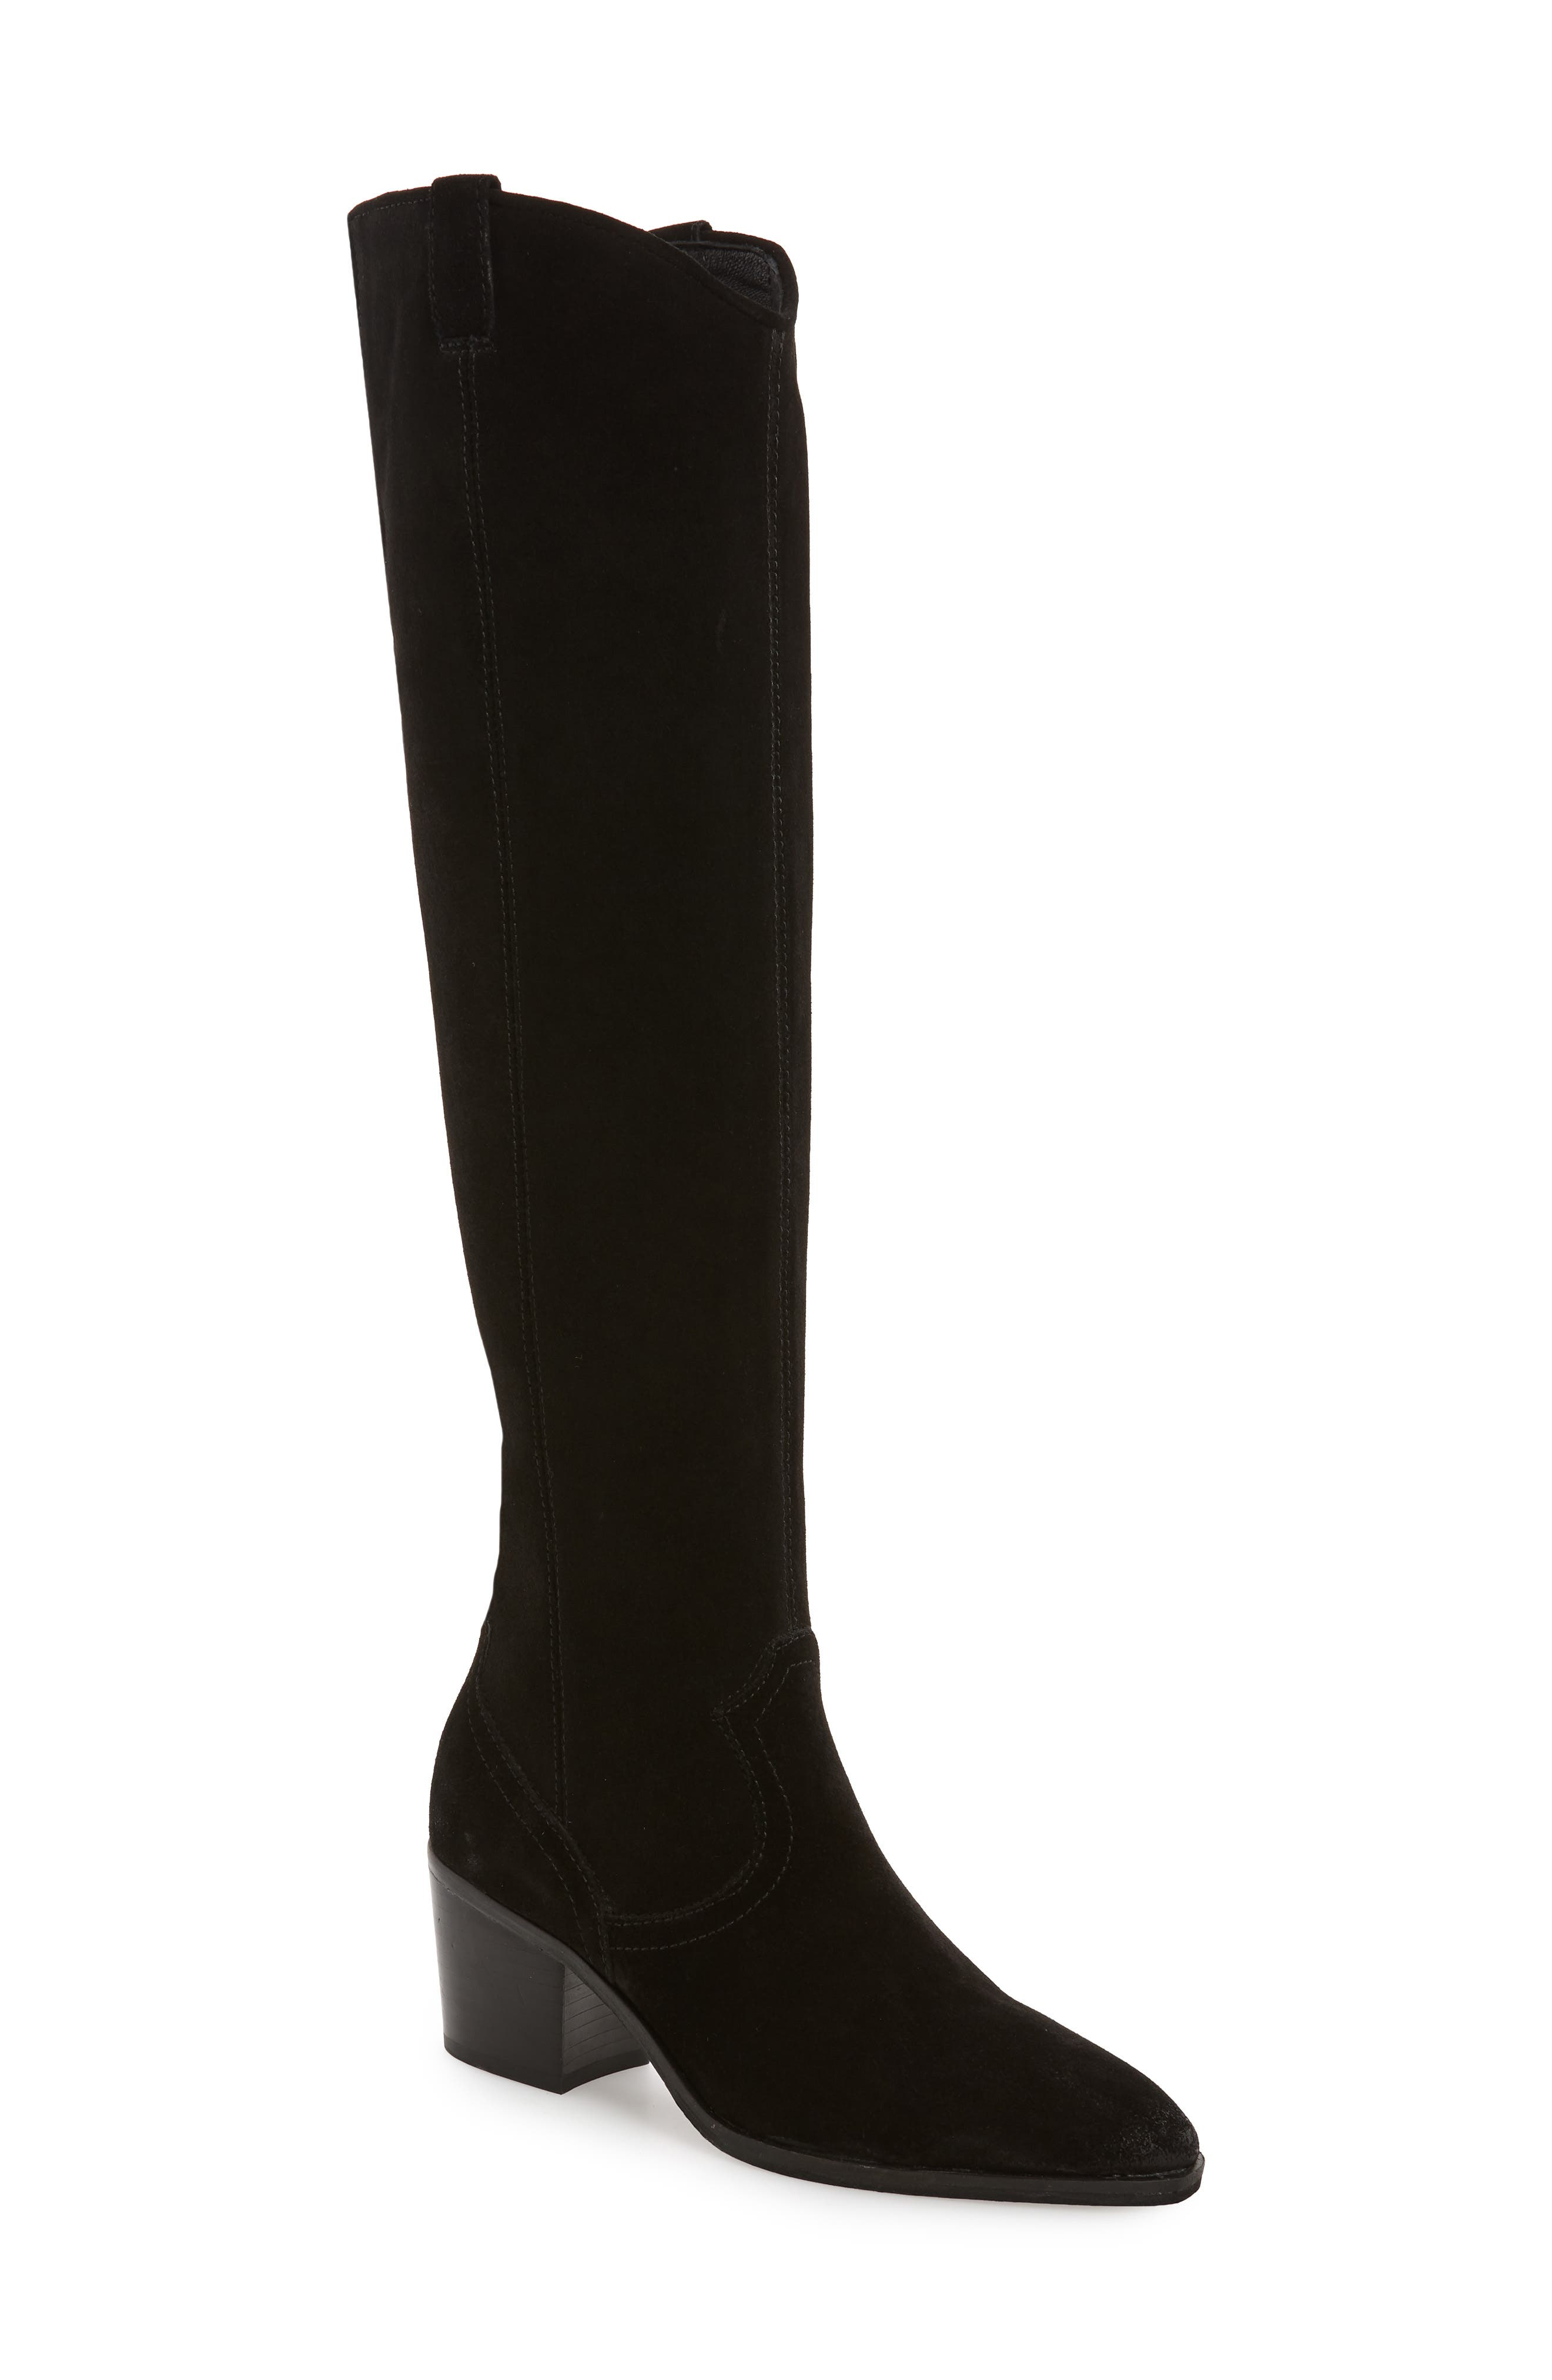 SBICCA, Delano Over the Knee Boot, Main thumbnail 1, color, BLACK LEATHER